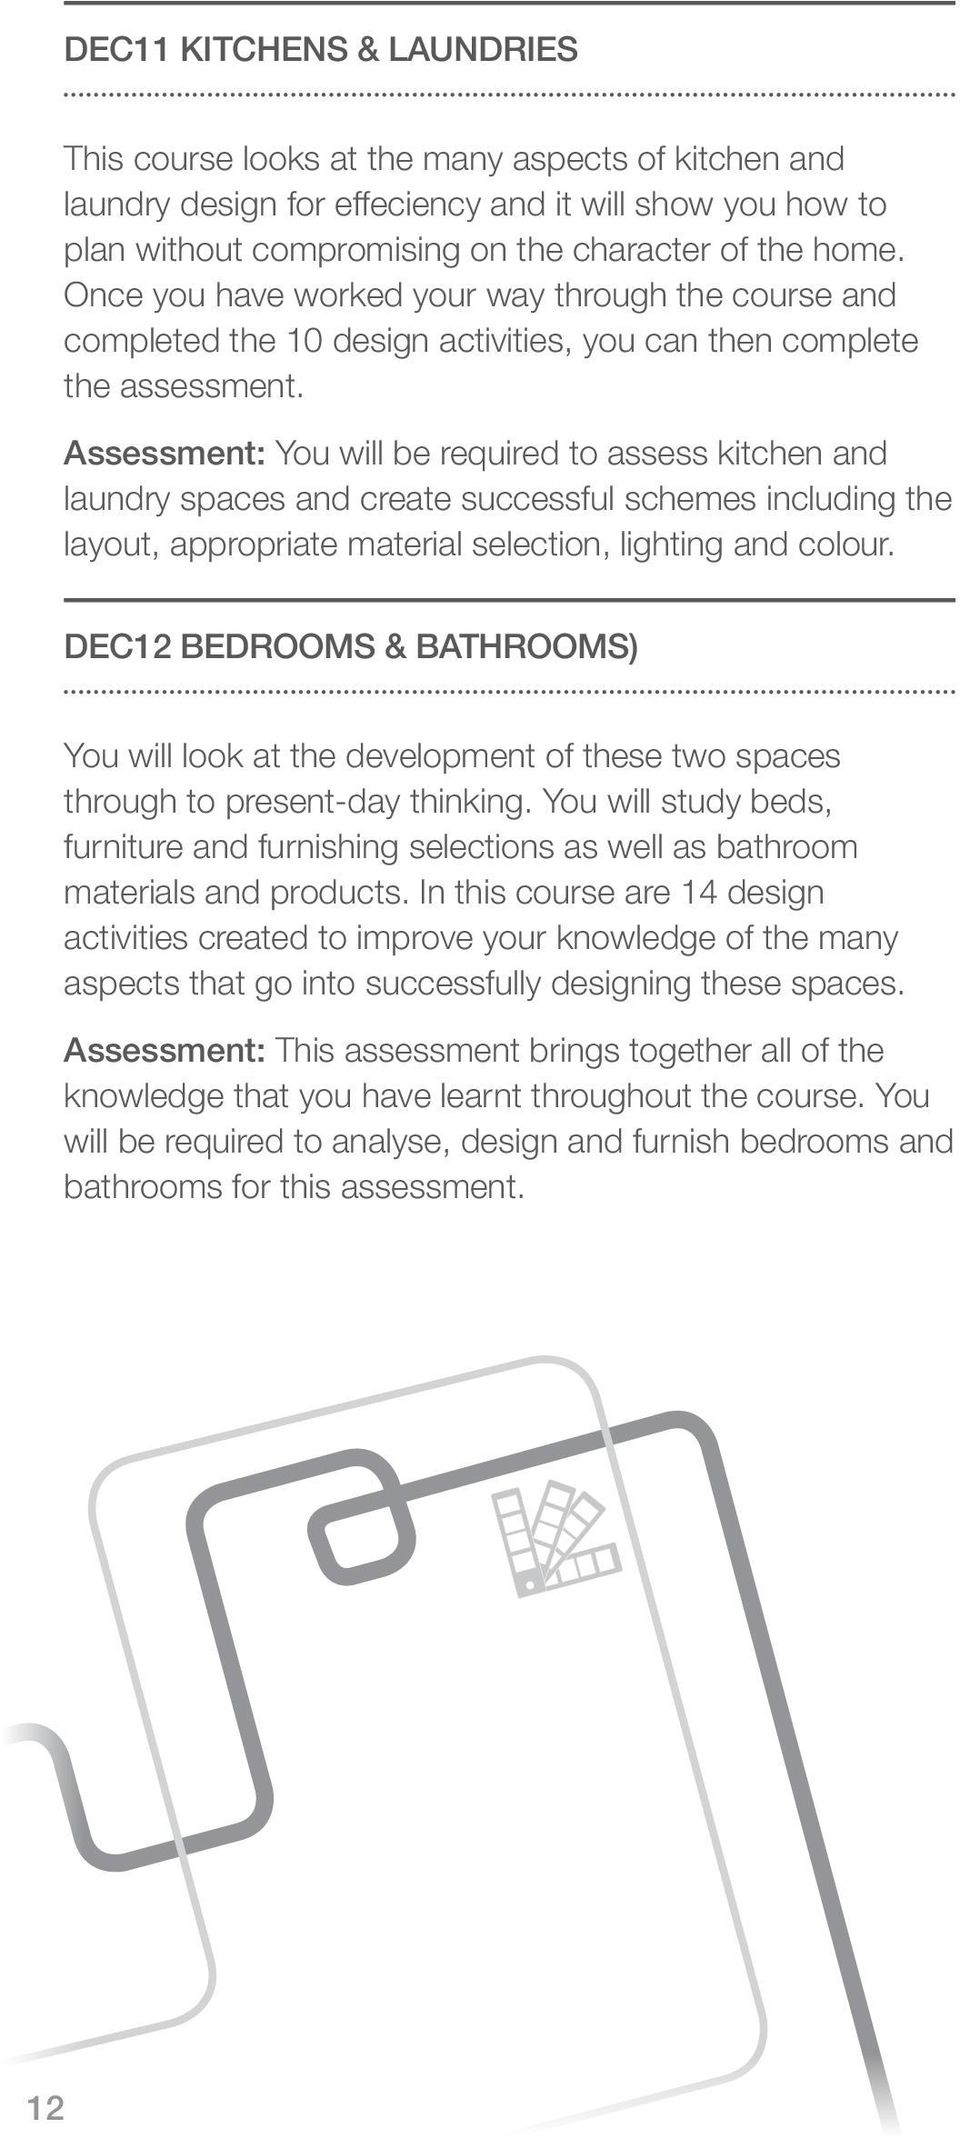 Assessment: You will be required to assess kitchen and laundry spaces and create successful schemes including the layout, appropriate material selection, lighting and colour.